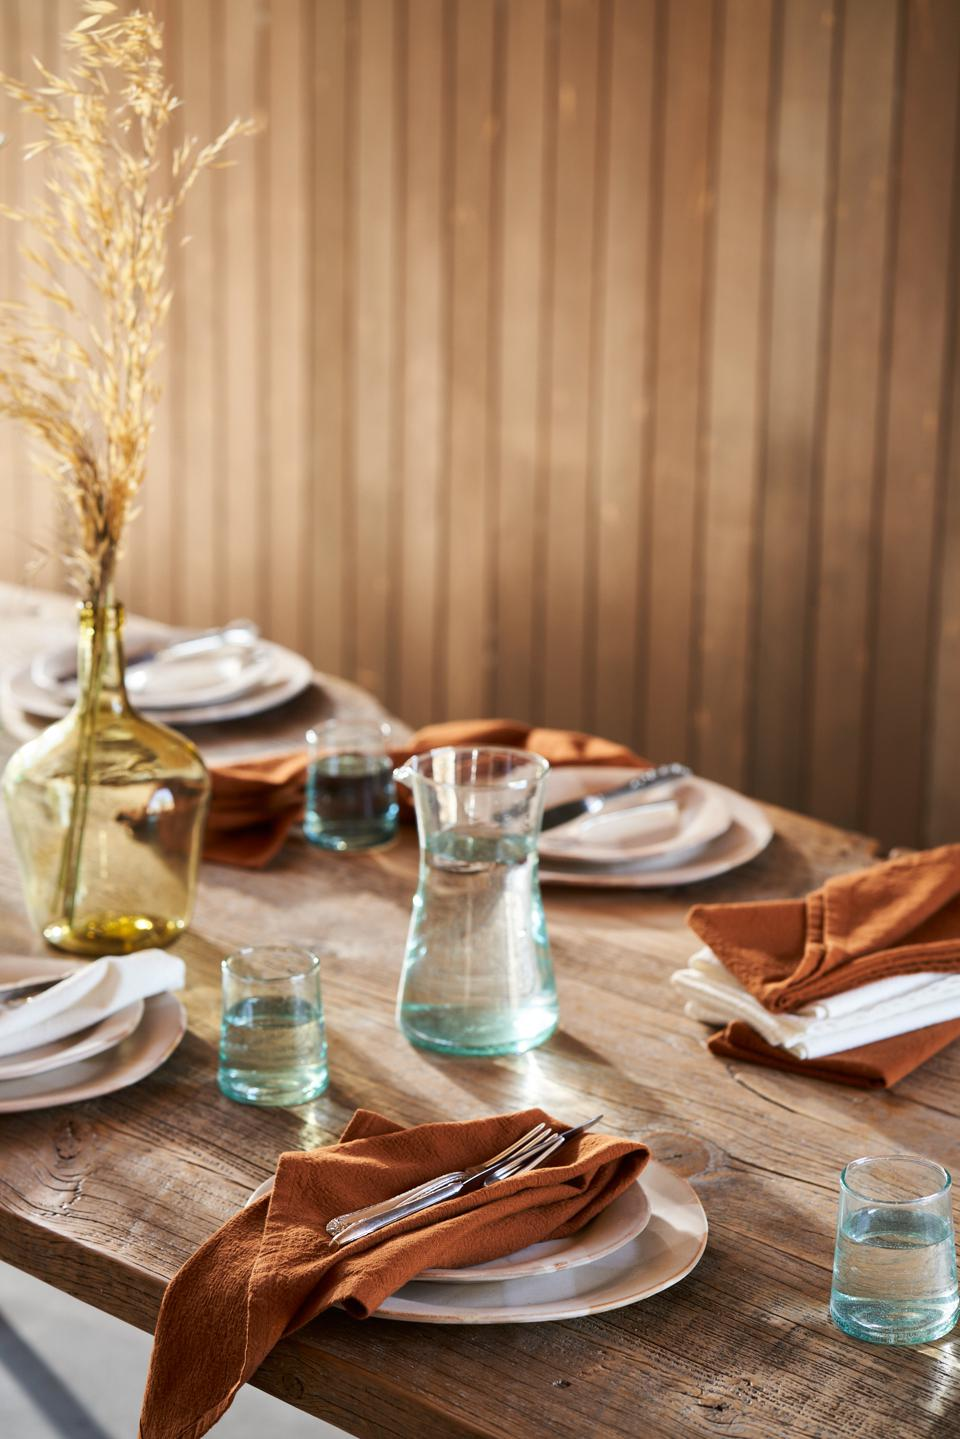 Rust-colored organic napkins within an elegant table setting.